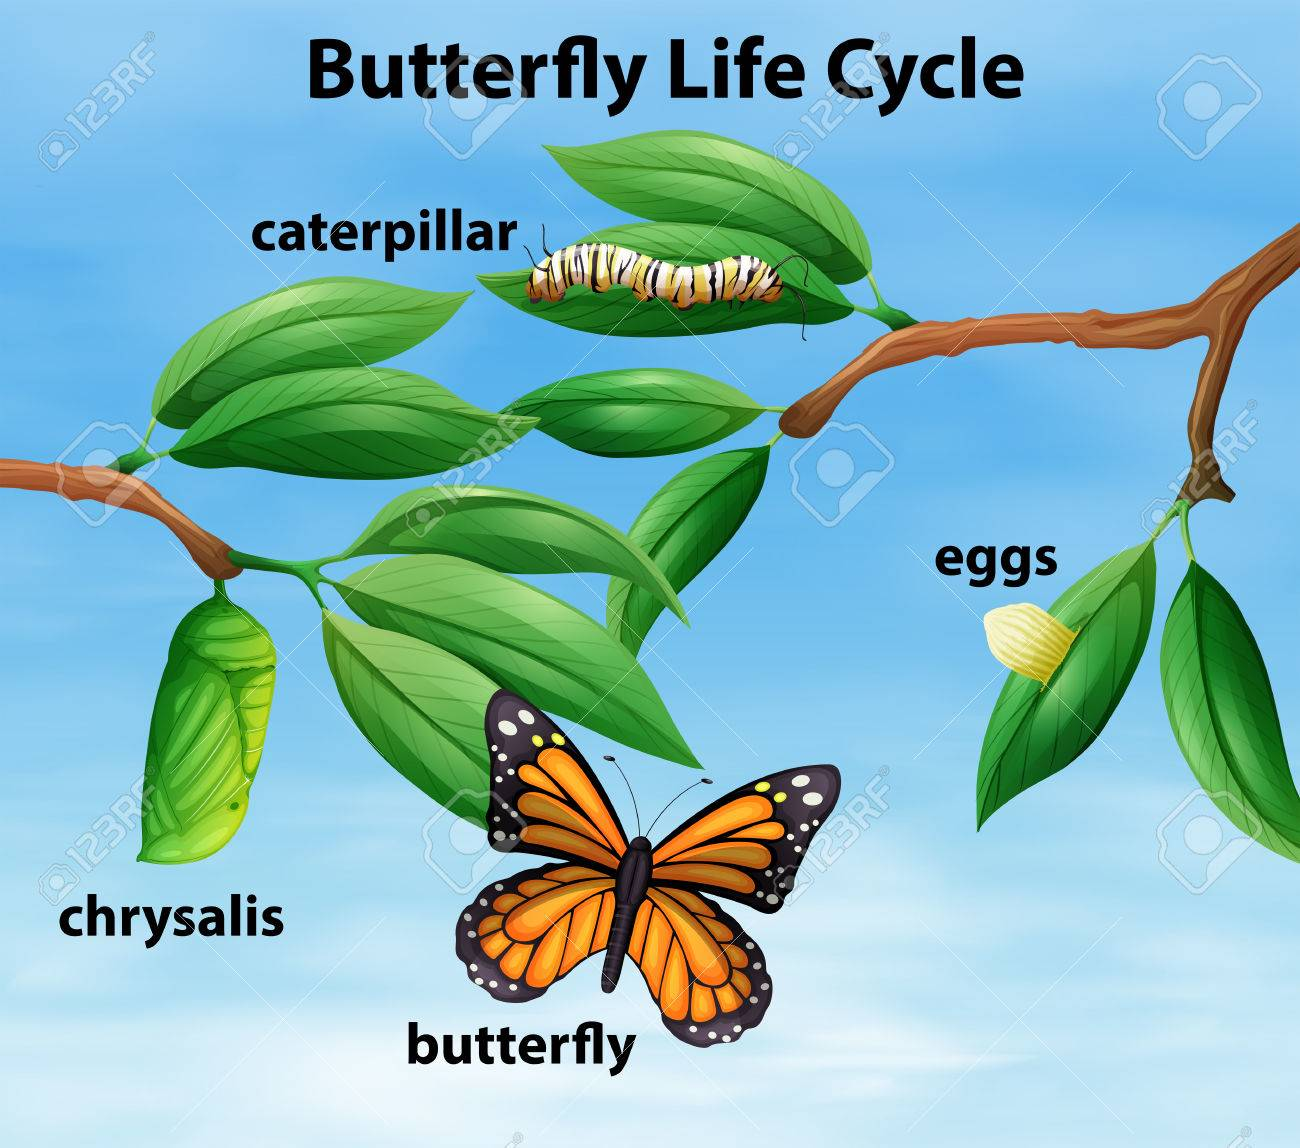 Butterfly Life Cycle Diagram Illustration Royalty Free Cliparts ...